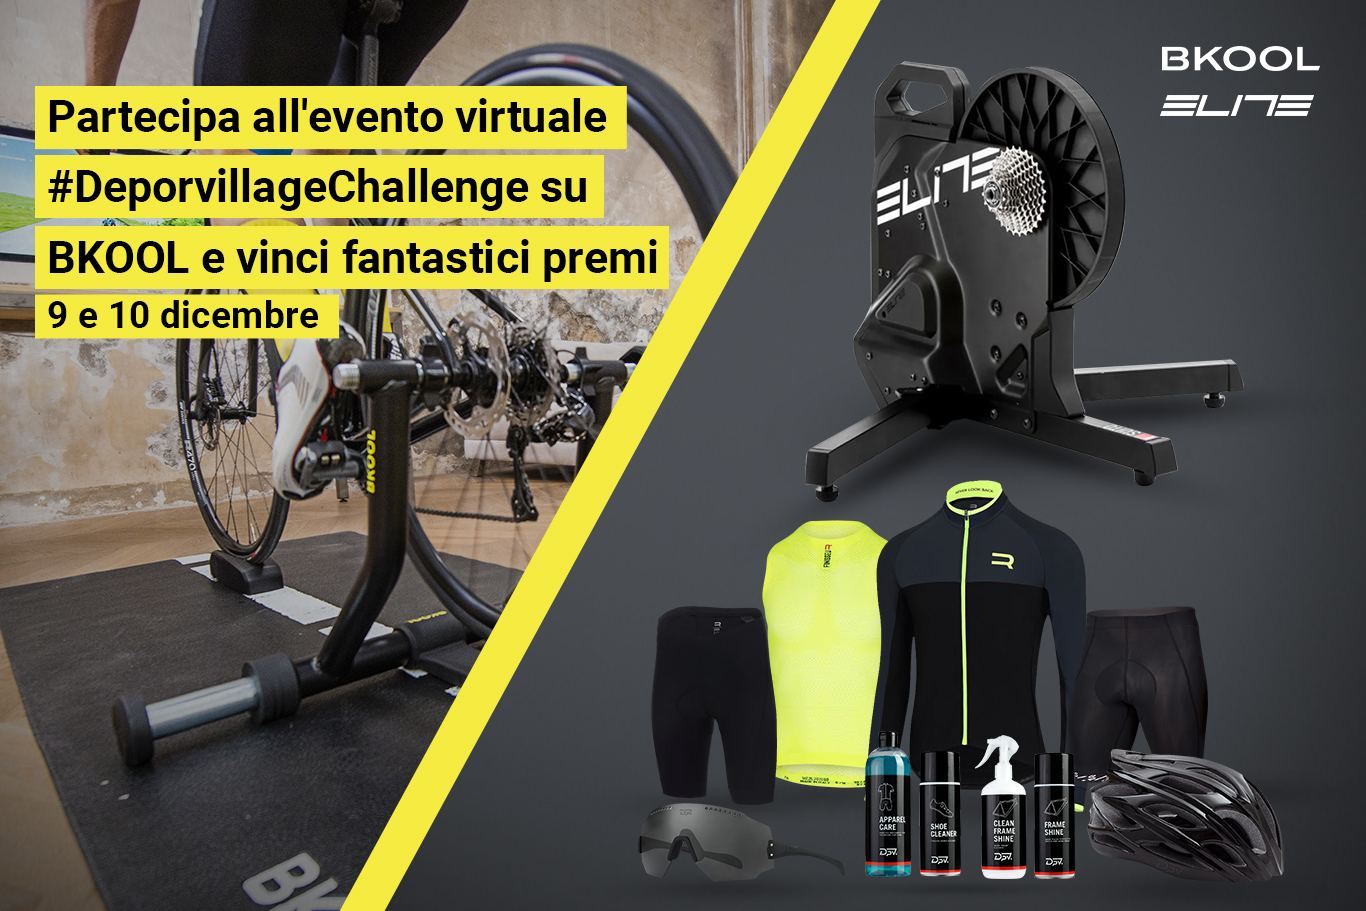 Evento virtuale #DeporvillageChallenge di BKOOL